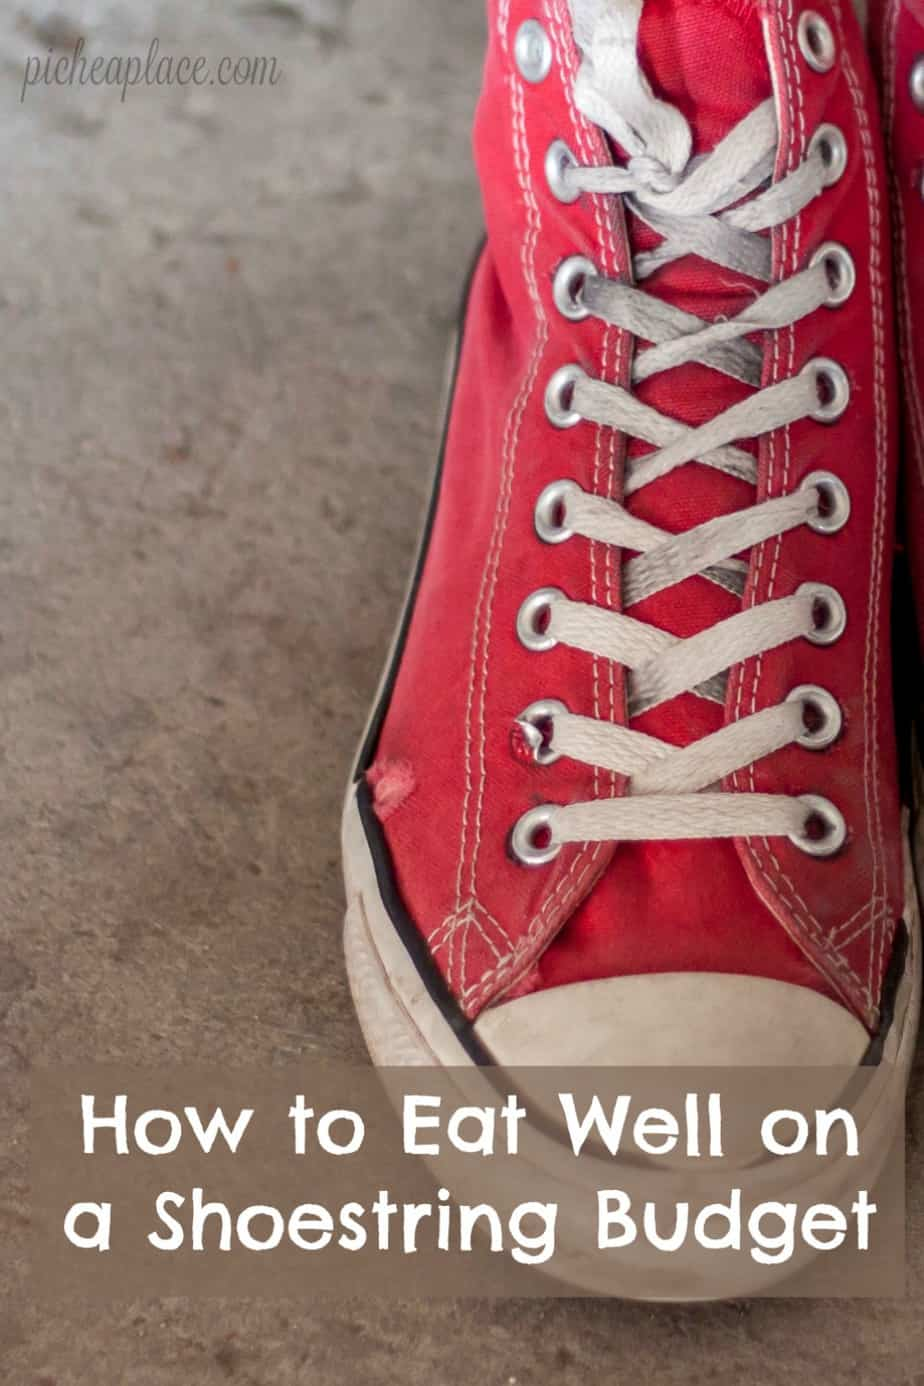 Eating healthy can be expensive, but it does not have to be. Here are a few simple strategies to eat well on a shoestring budget.